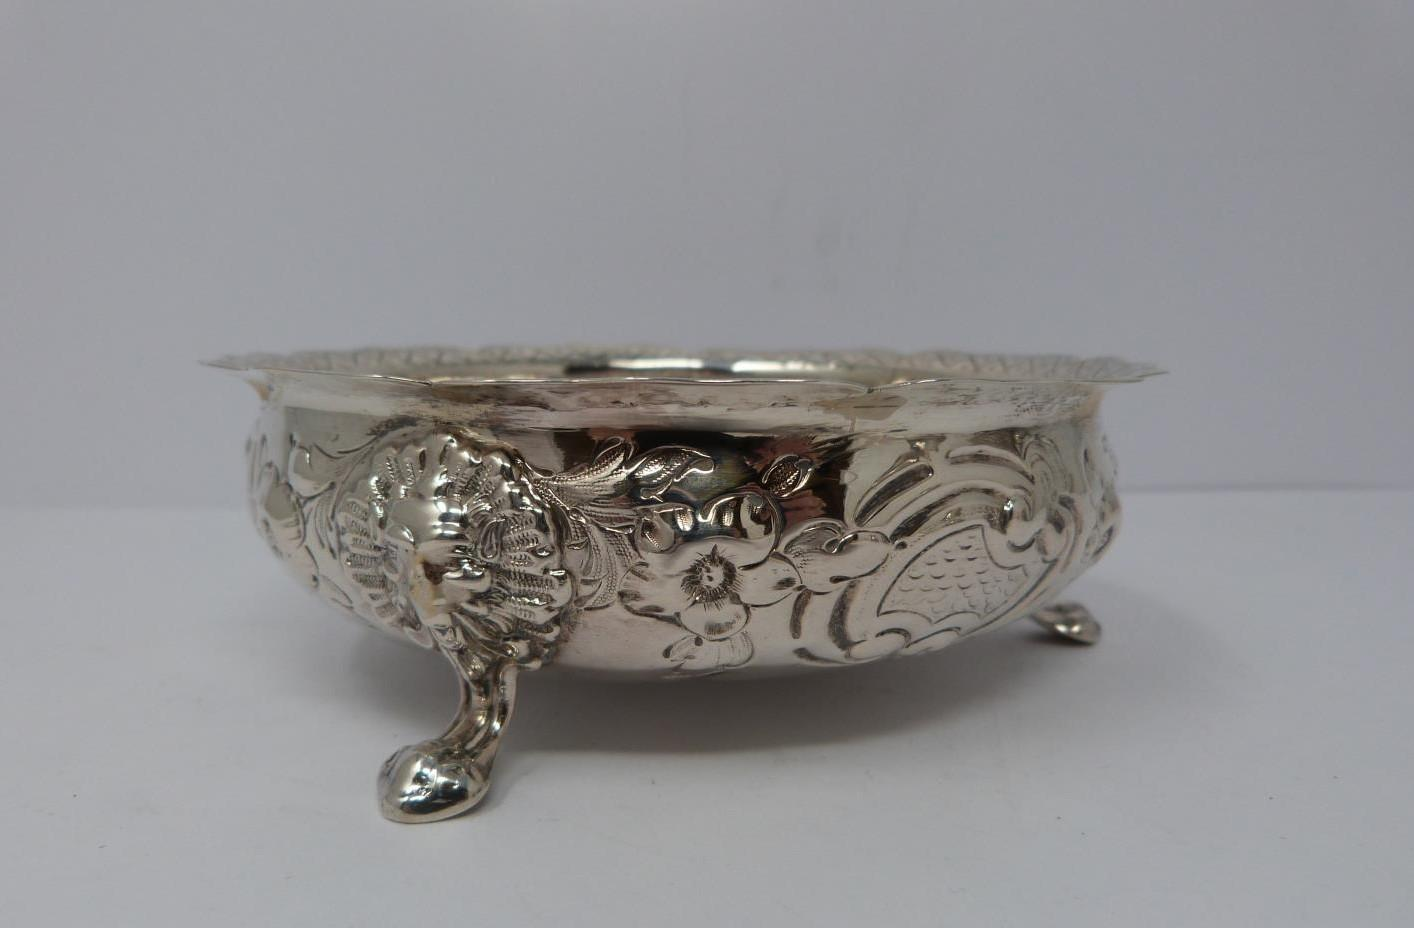 Two silver jugs, sugar and repousse work bowl. Bowl on three lions feet, 1857, London, Henry - Image 6 of 9